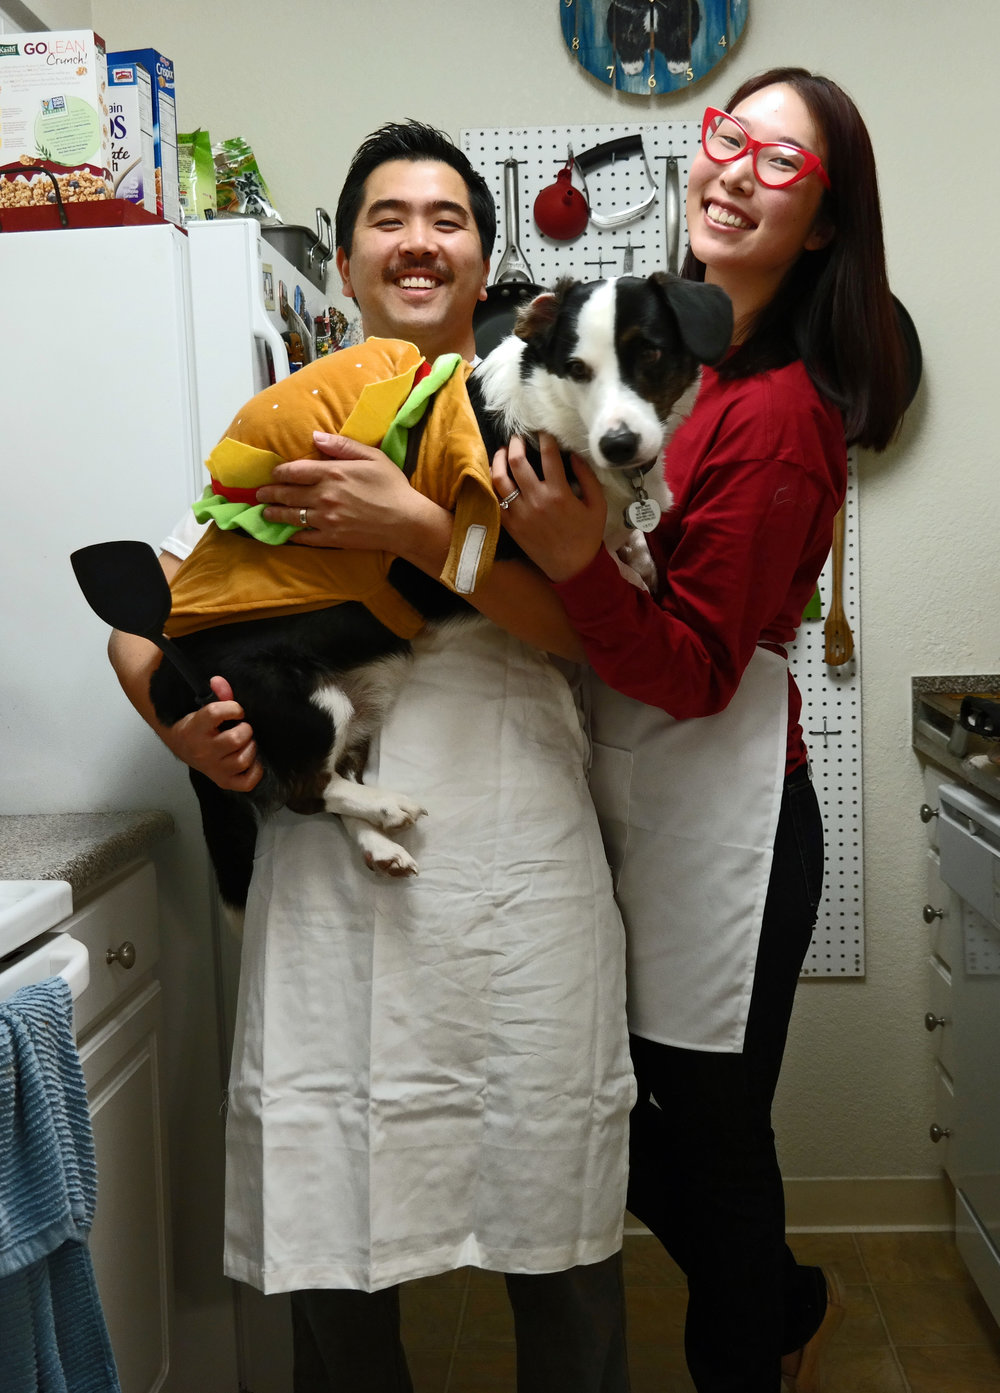 Halloween 2016: The Bob's Burger family - Justin as Bob, Me as Linda and Chewie as a cheeseburger